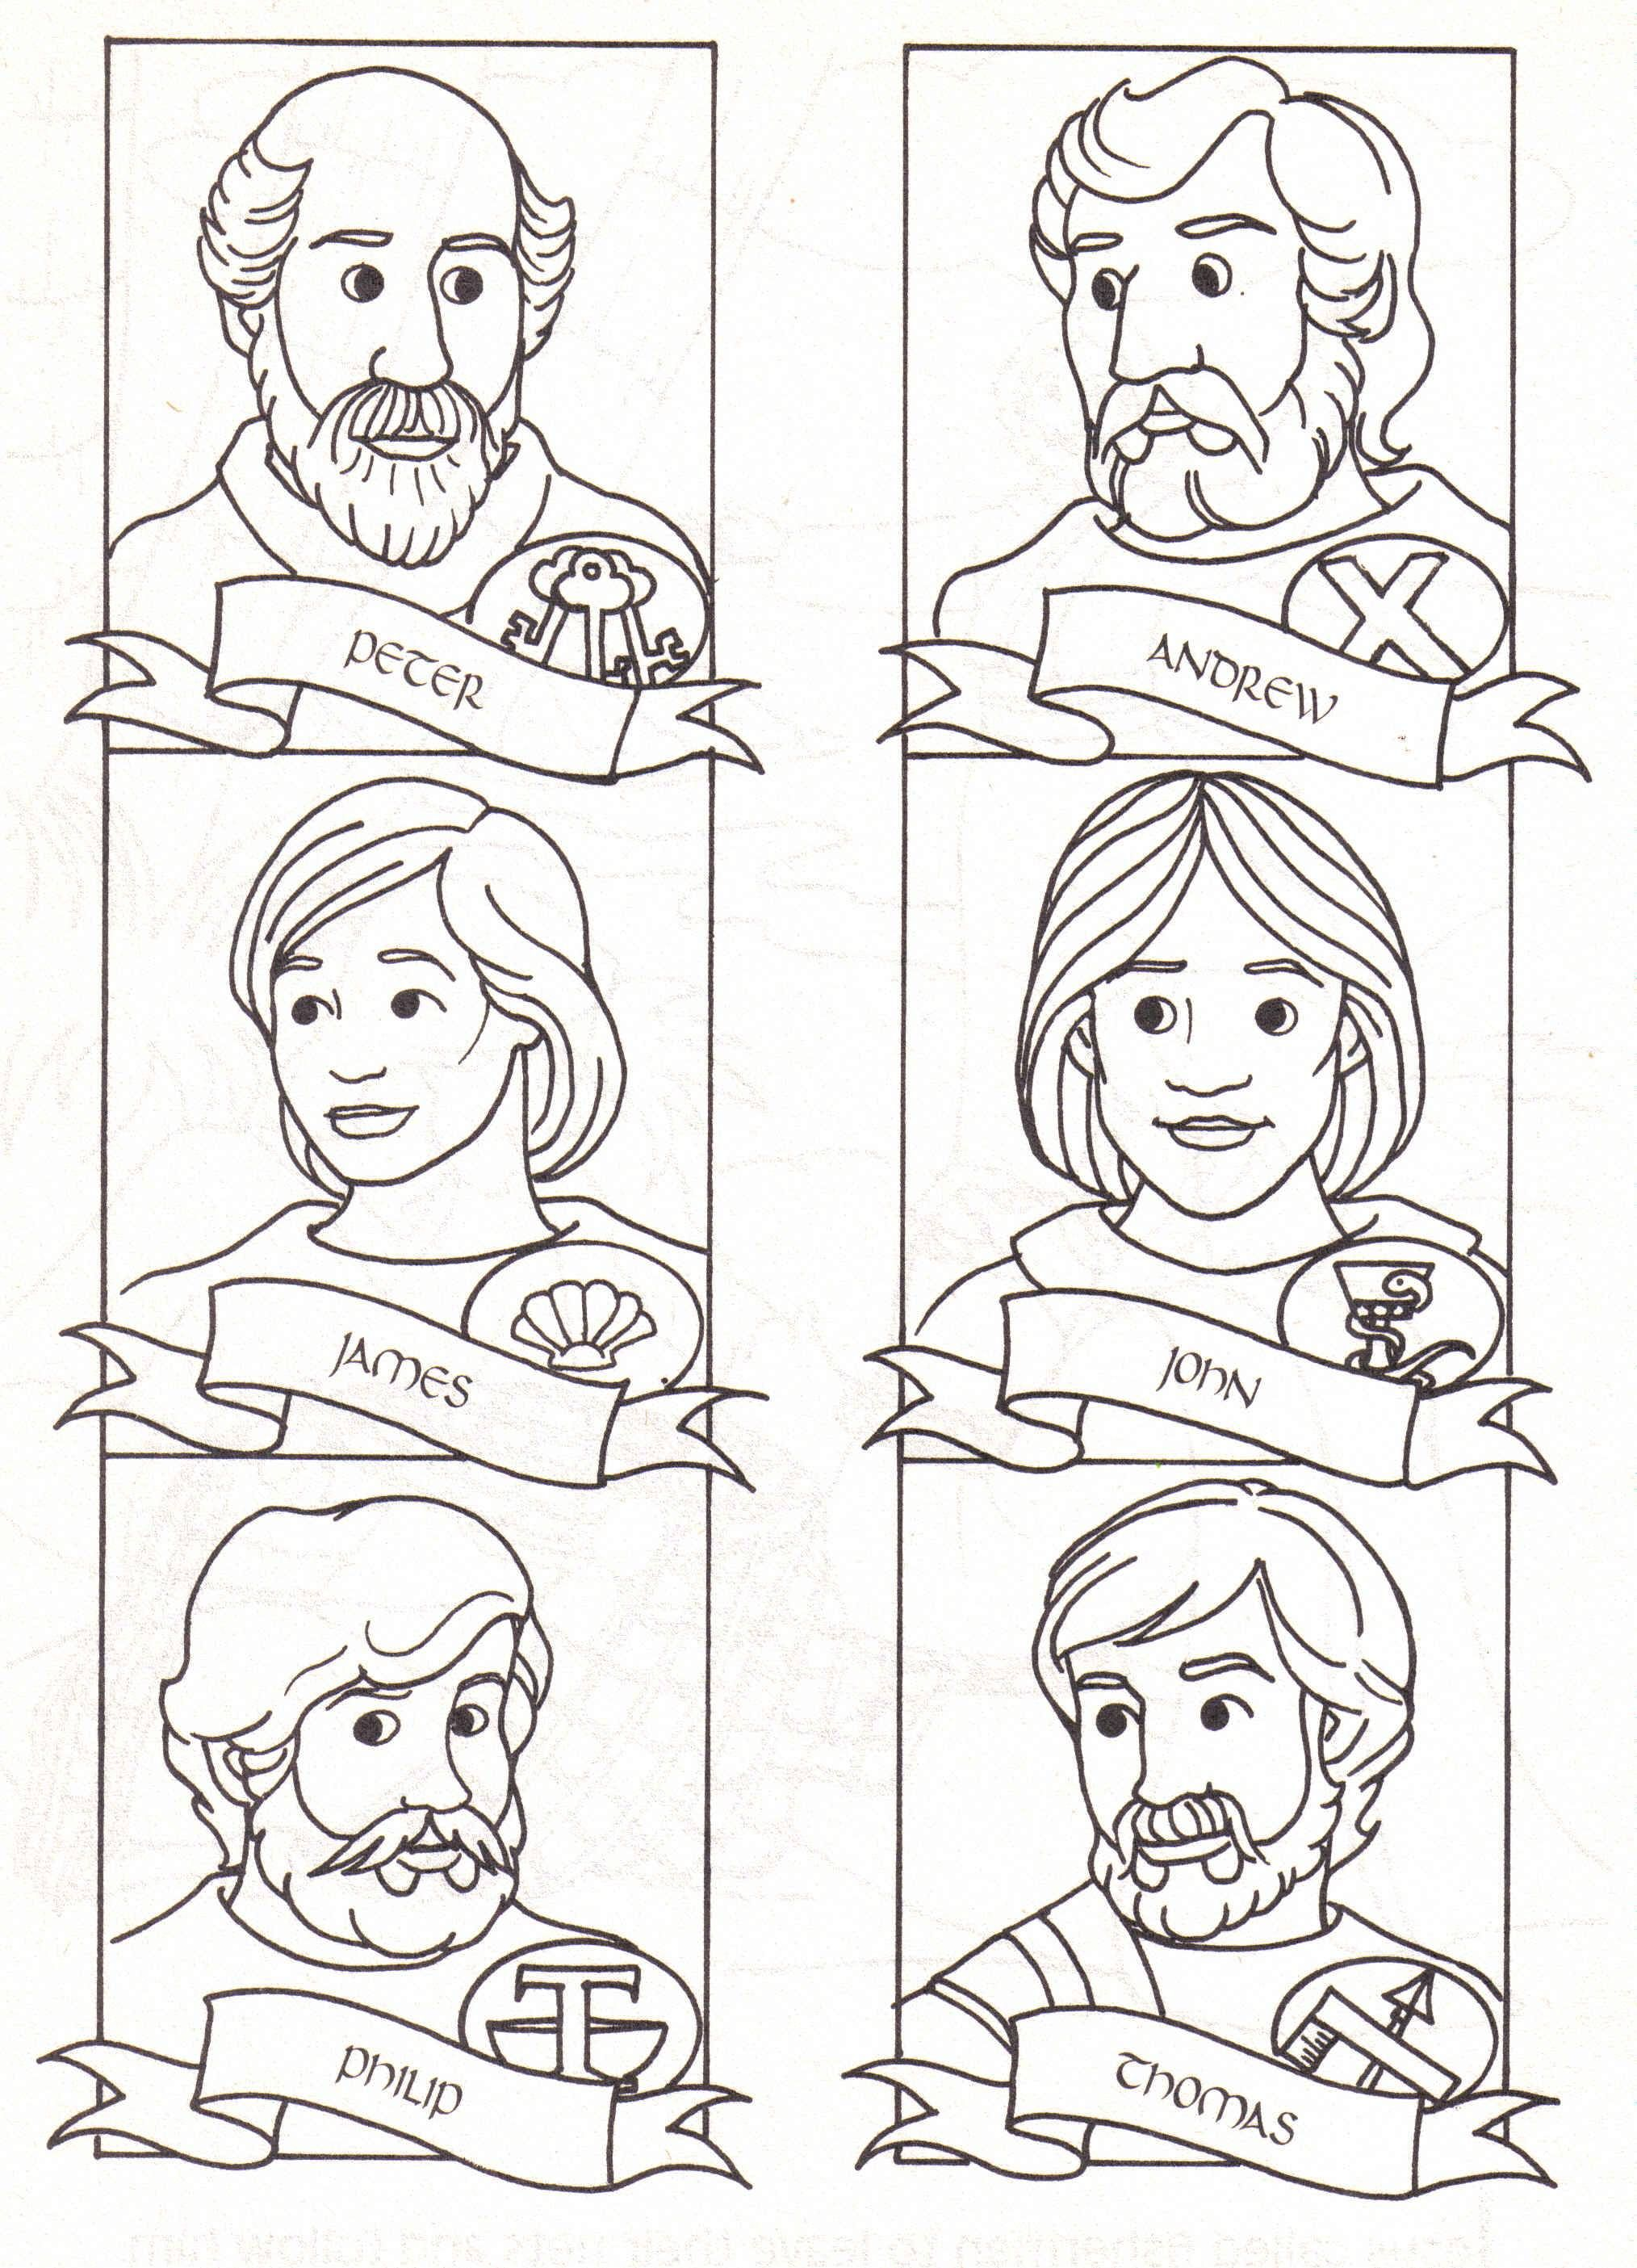 12 Disciples Coloring Page Download